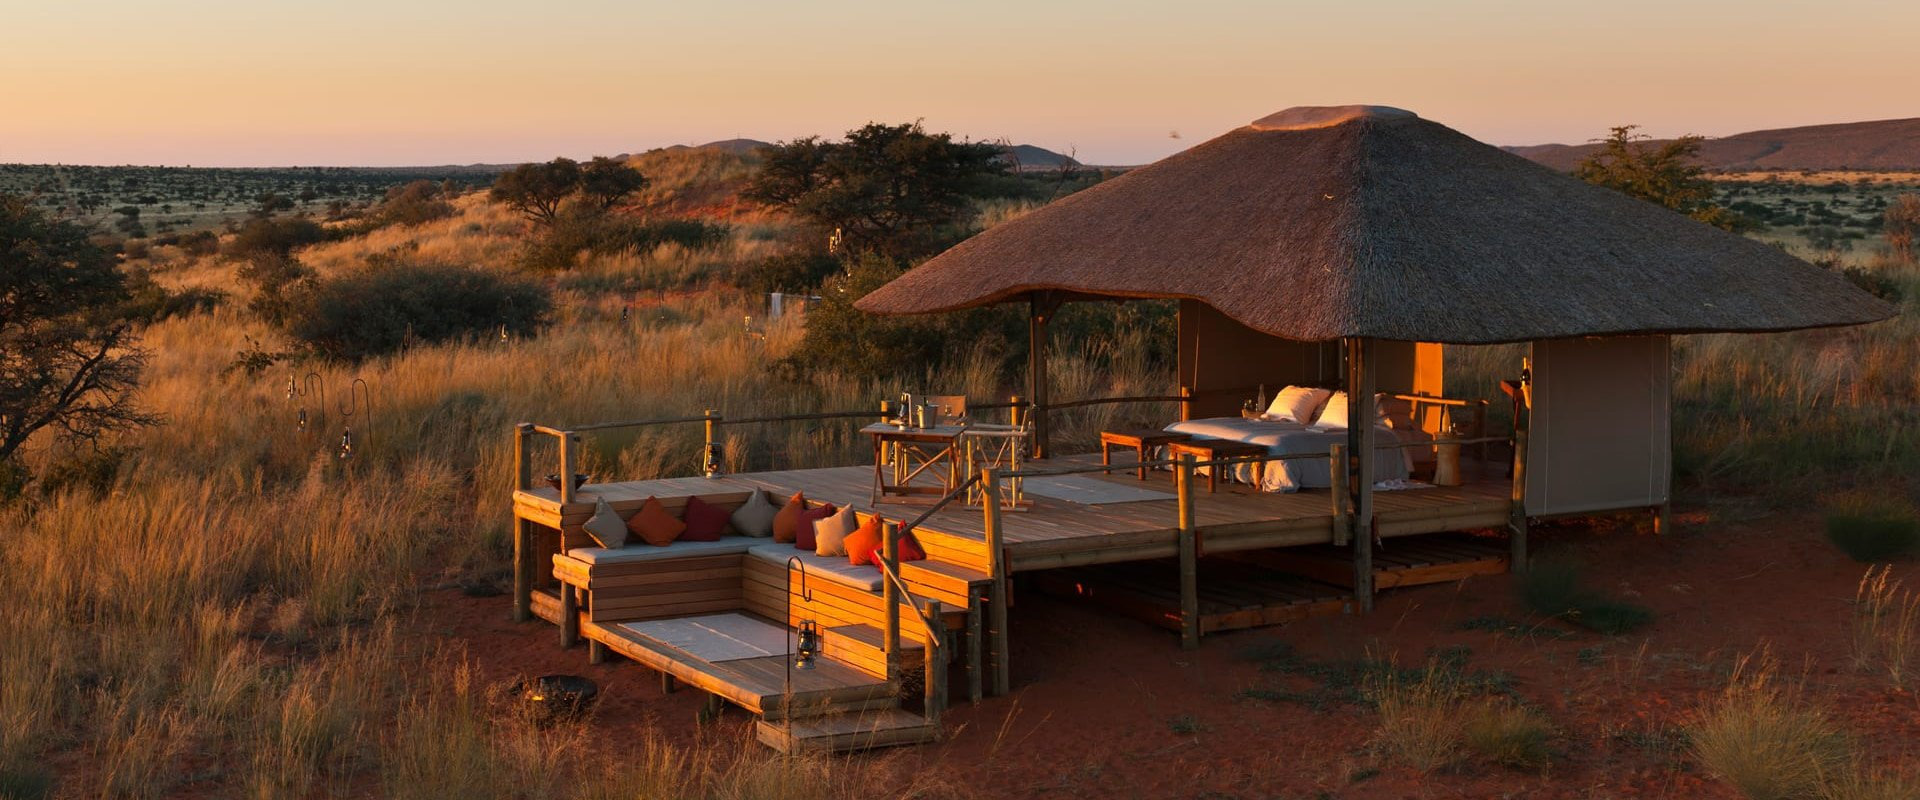 Spend a memorable night on a sleep out amongst the dunes